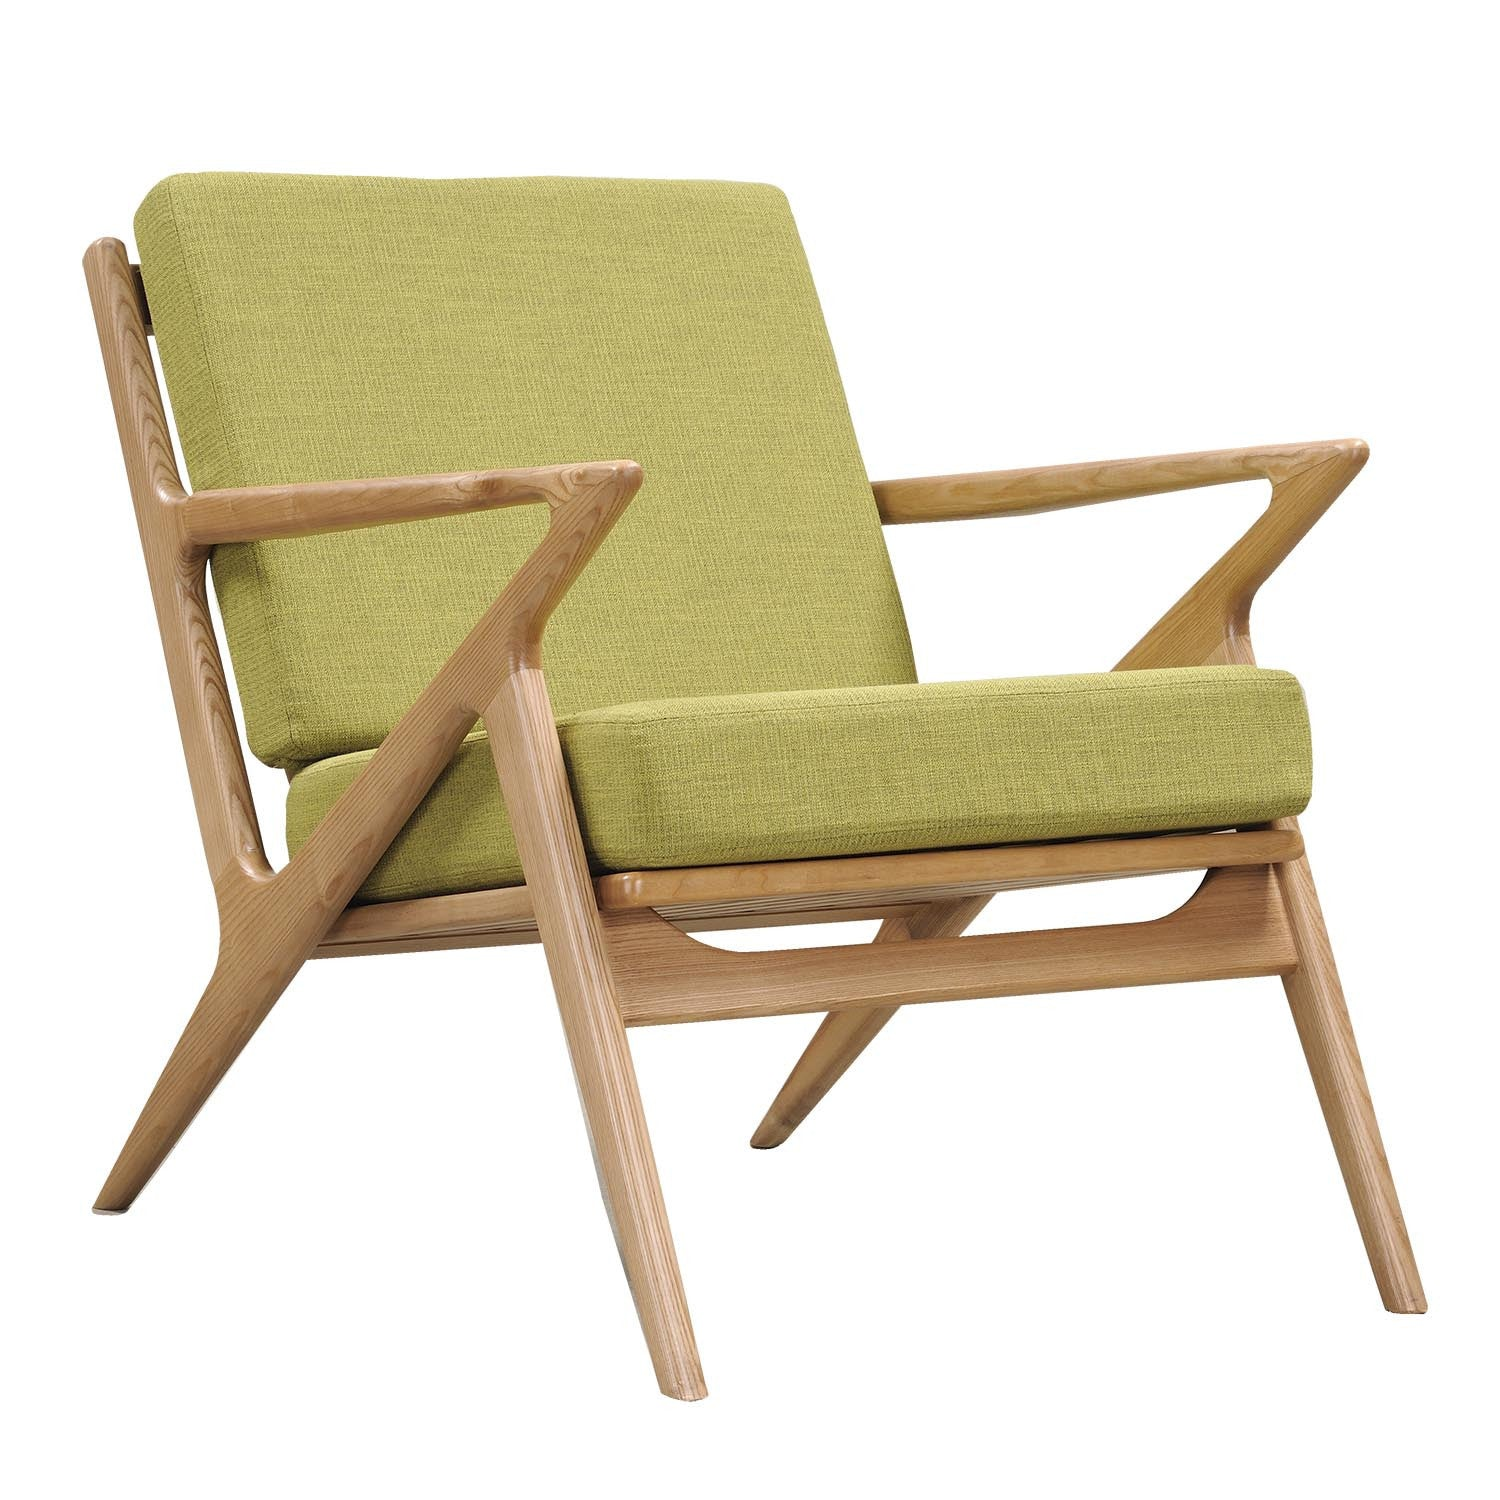 Jet Accent Chair Natural Wood Finish CHOICE OF COLORS – Apt2B